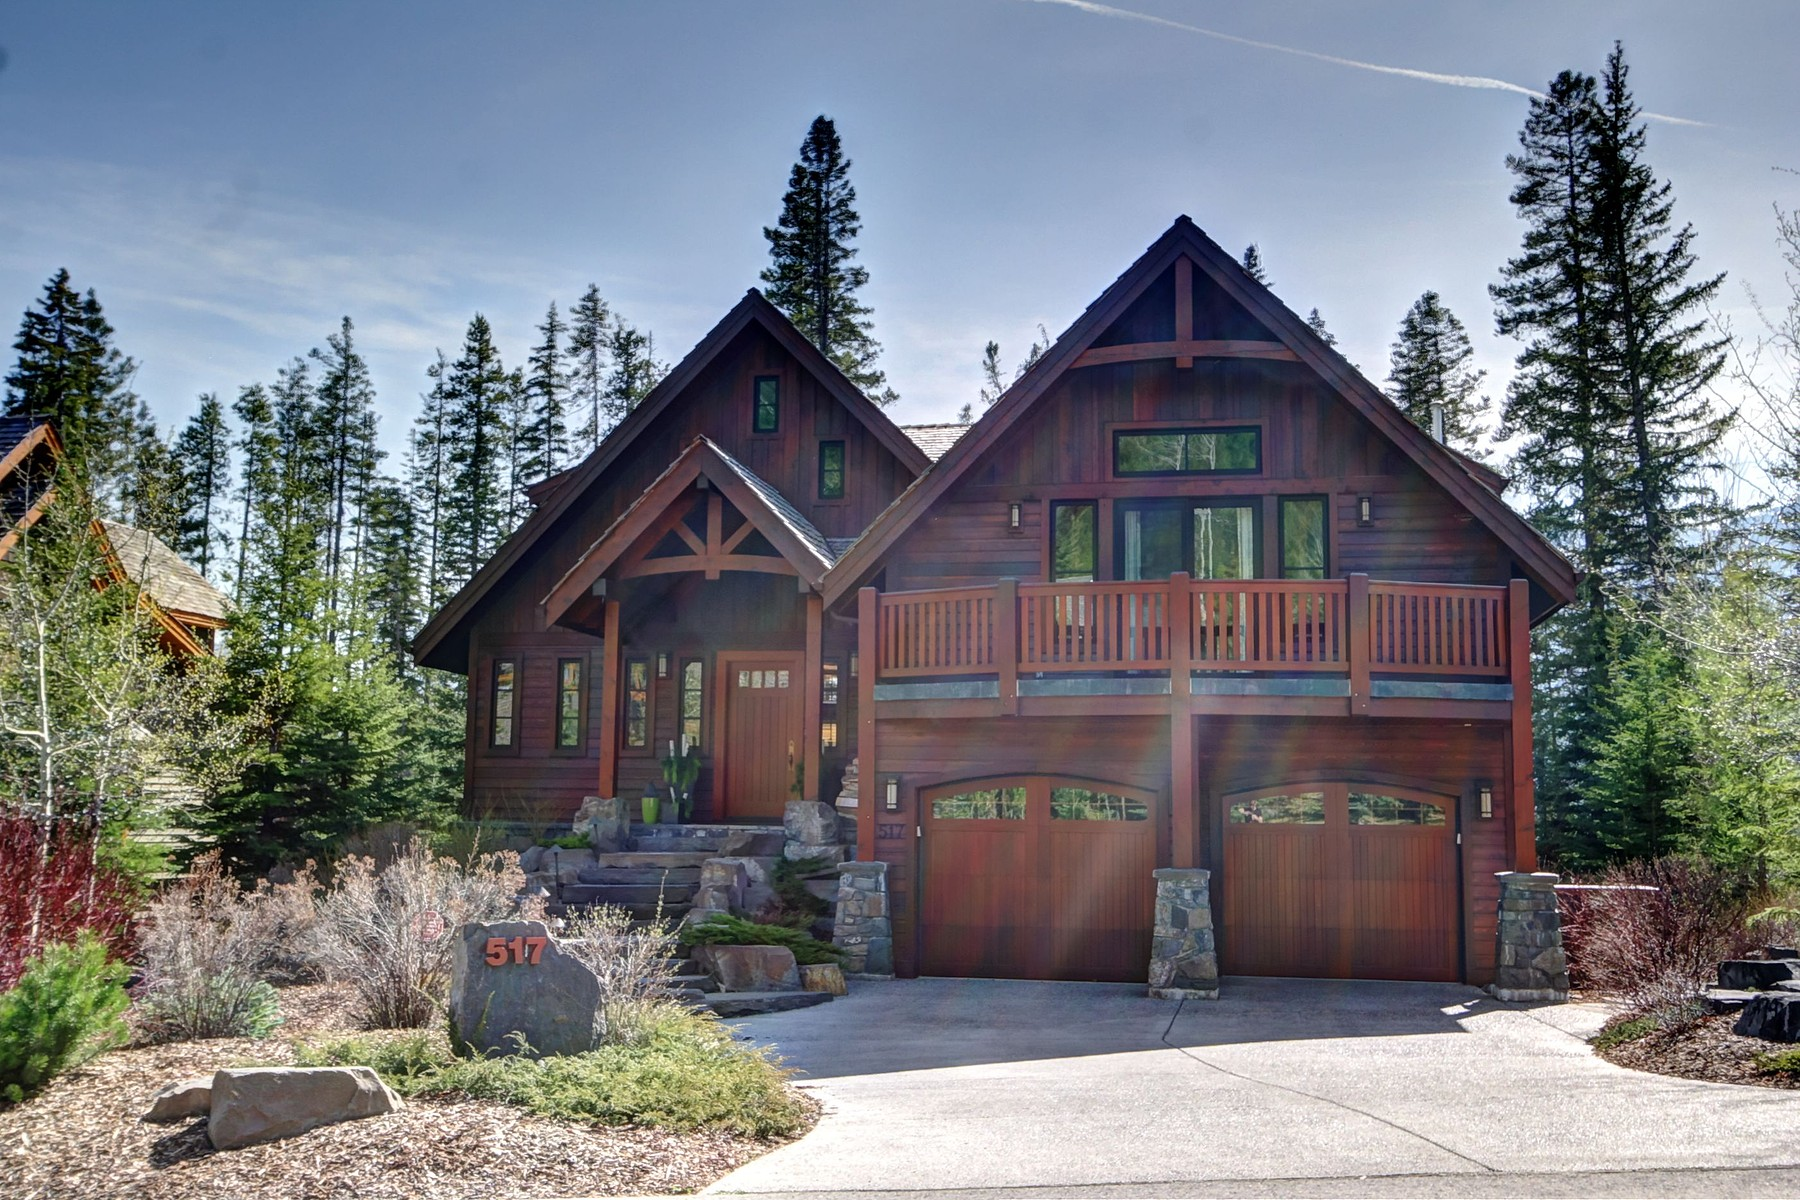 Single Family Home for Sale at Intimate Luxury in Silvertip 517 Silvertip Pointe Canmore, Alberta, T1W 3J1 Canada